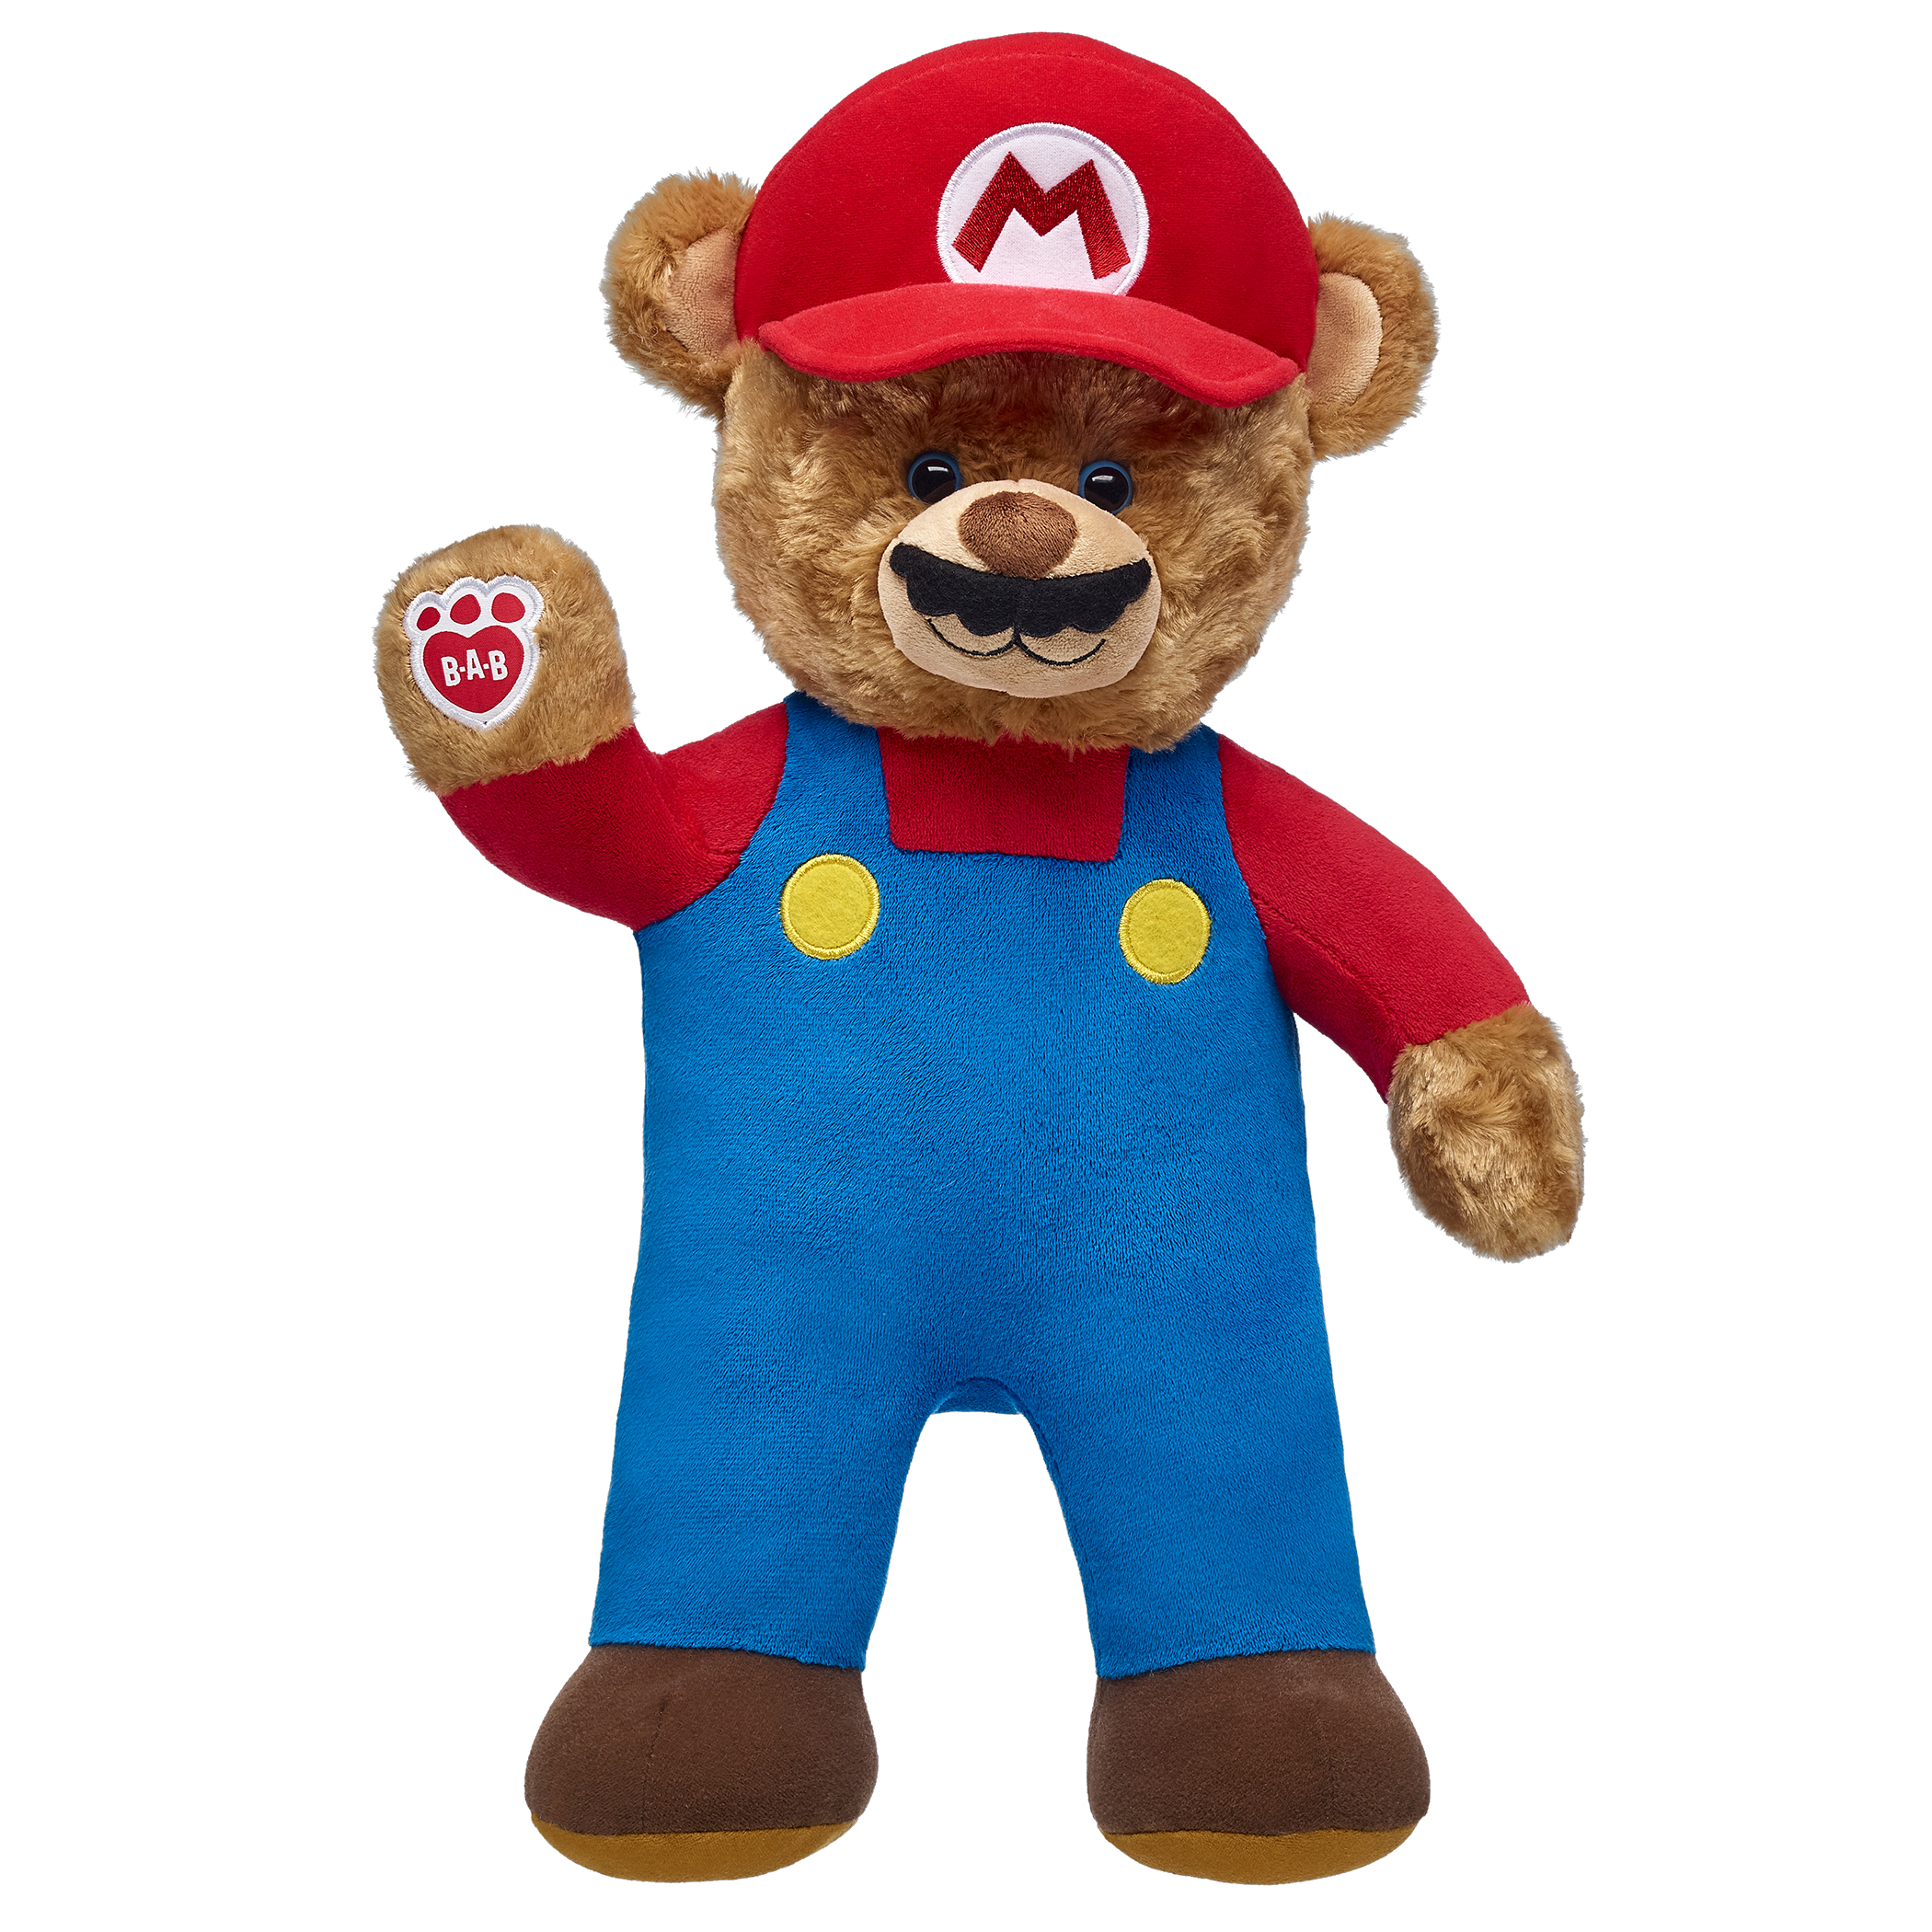 Build-A-Bear Now Has A Nintendo Collection